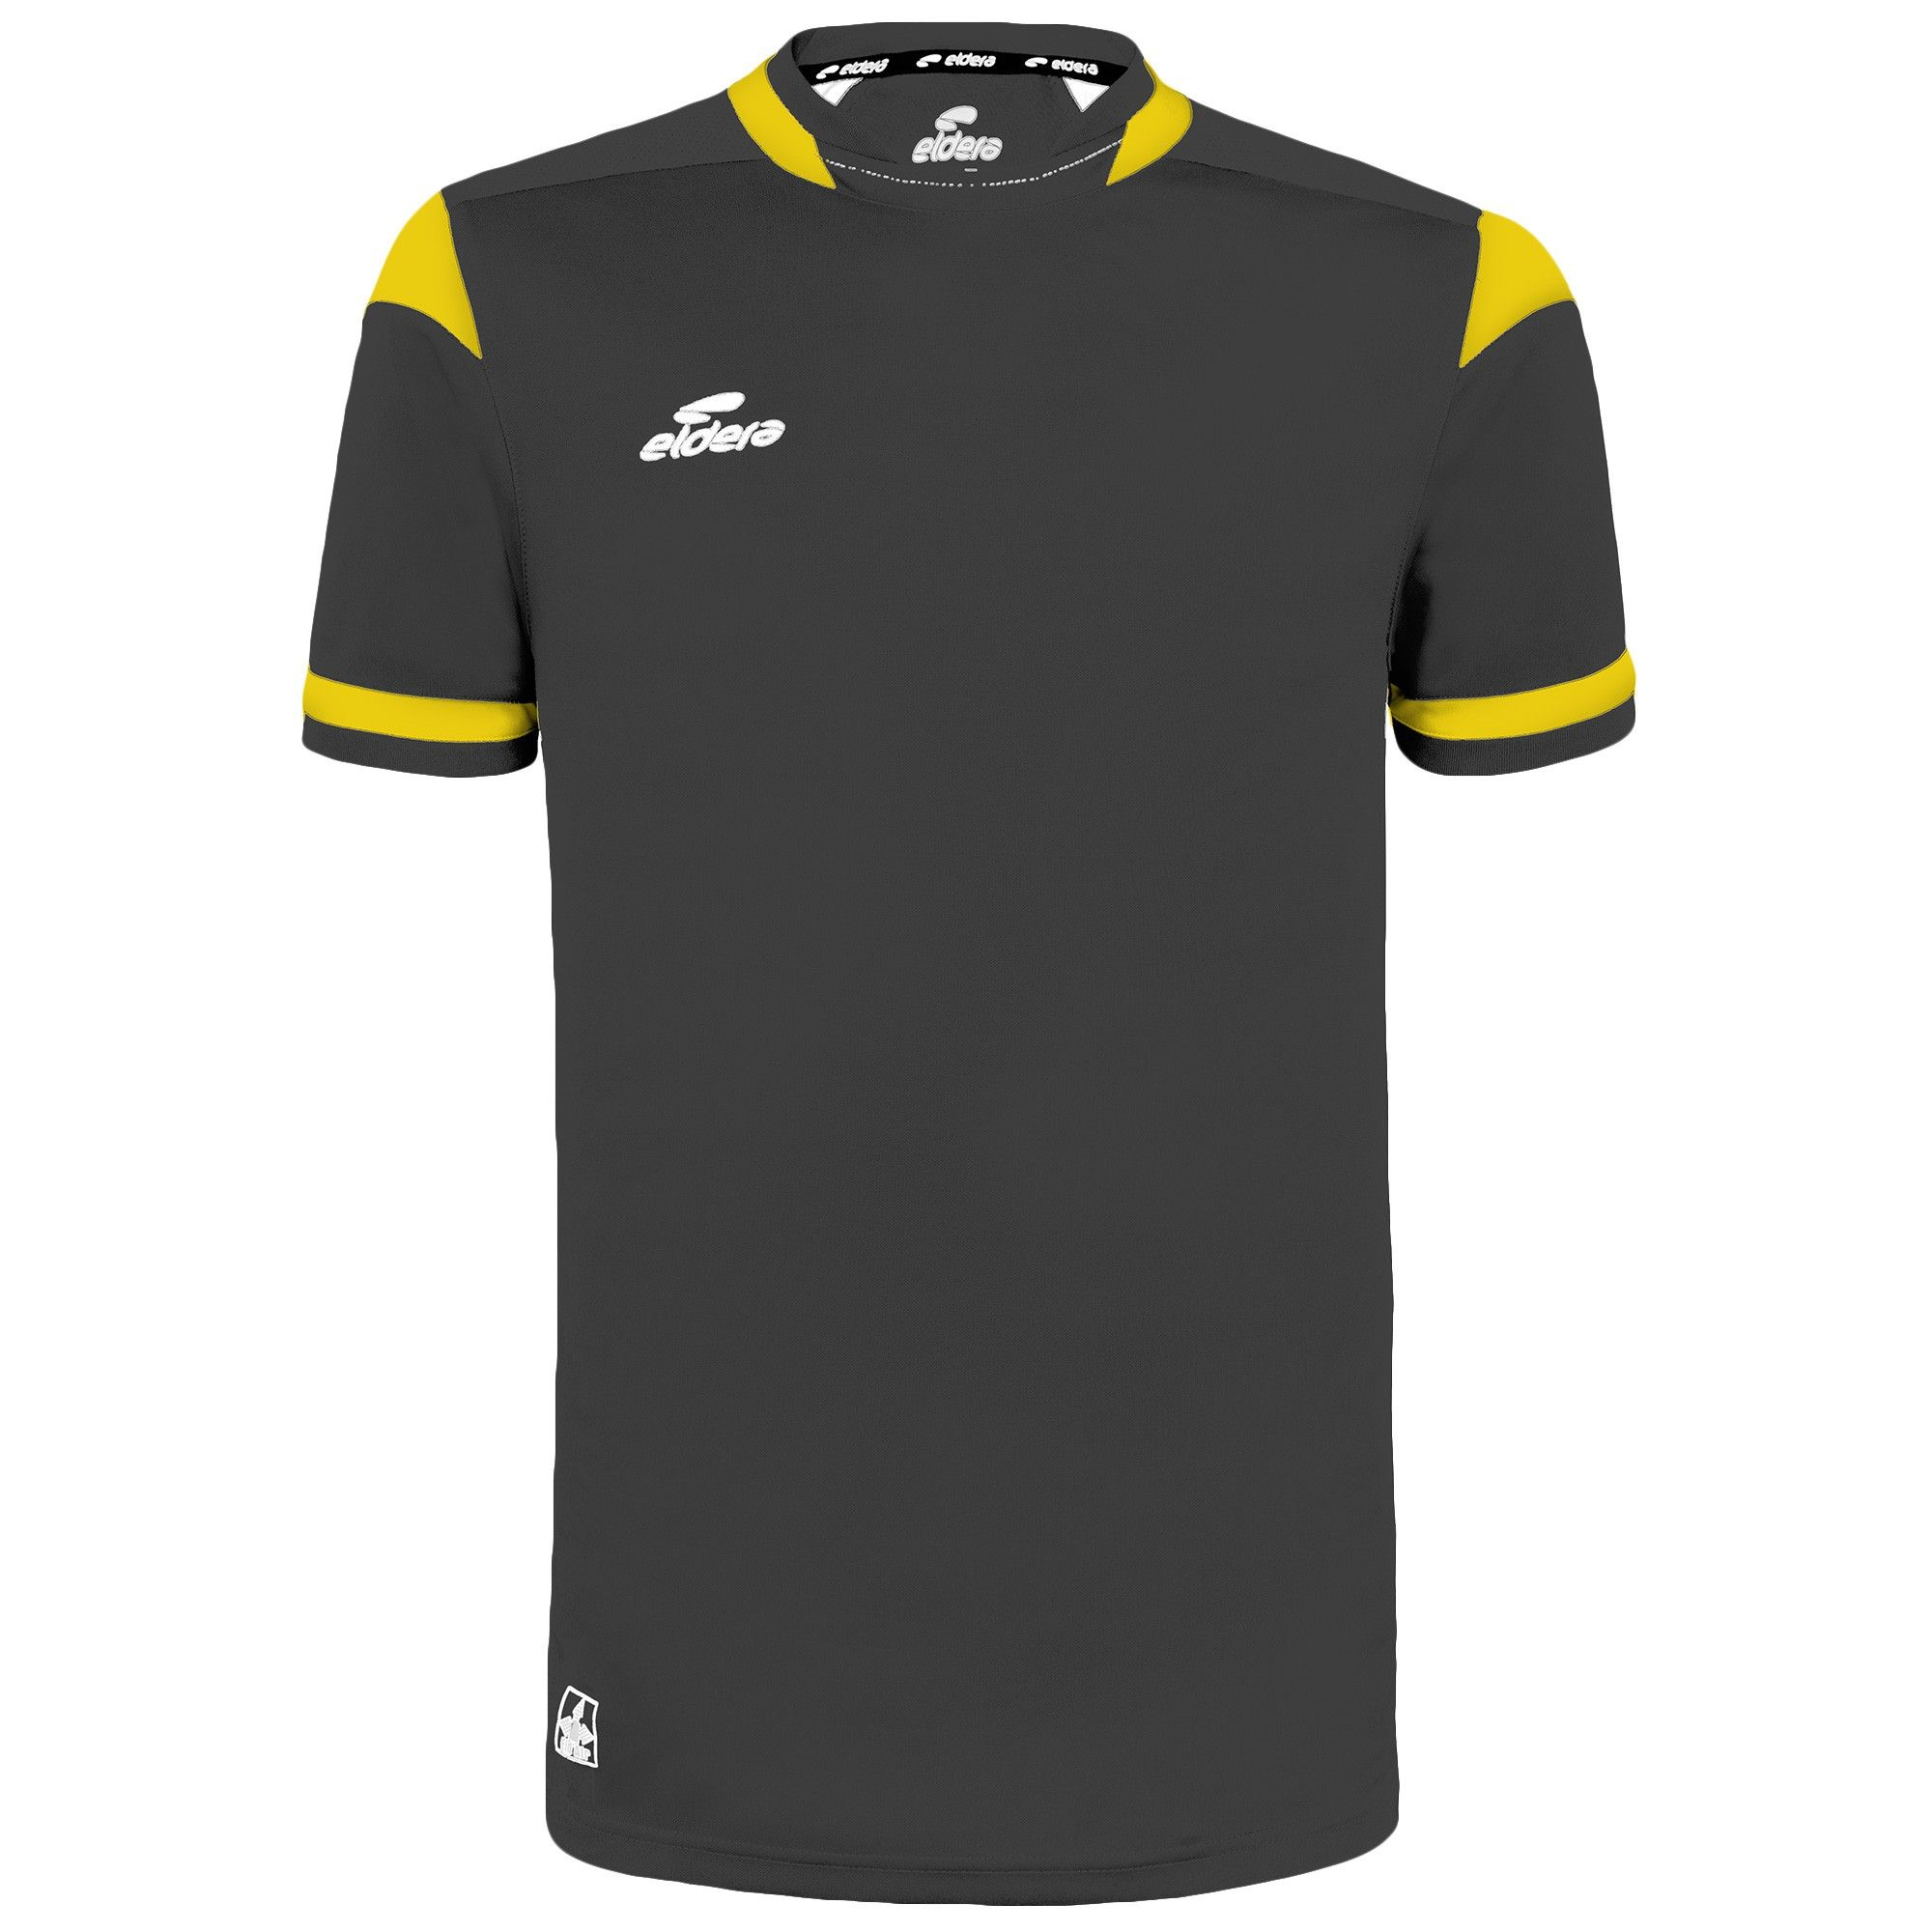 https://www.integral-sport.fr/46862/maillot-naise-mc.jpg